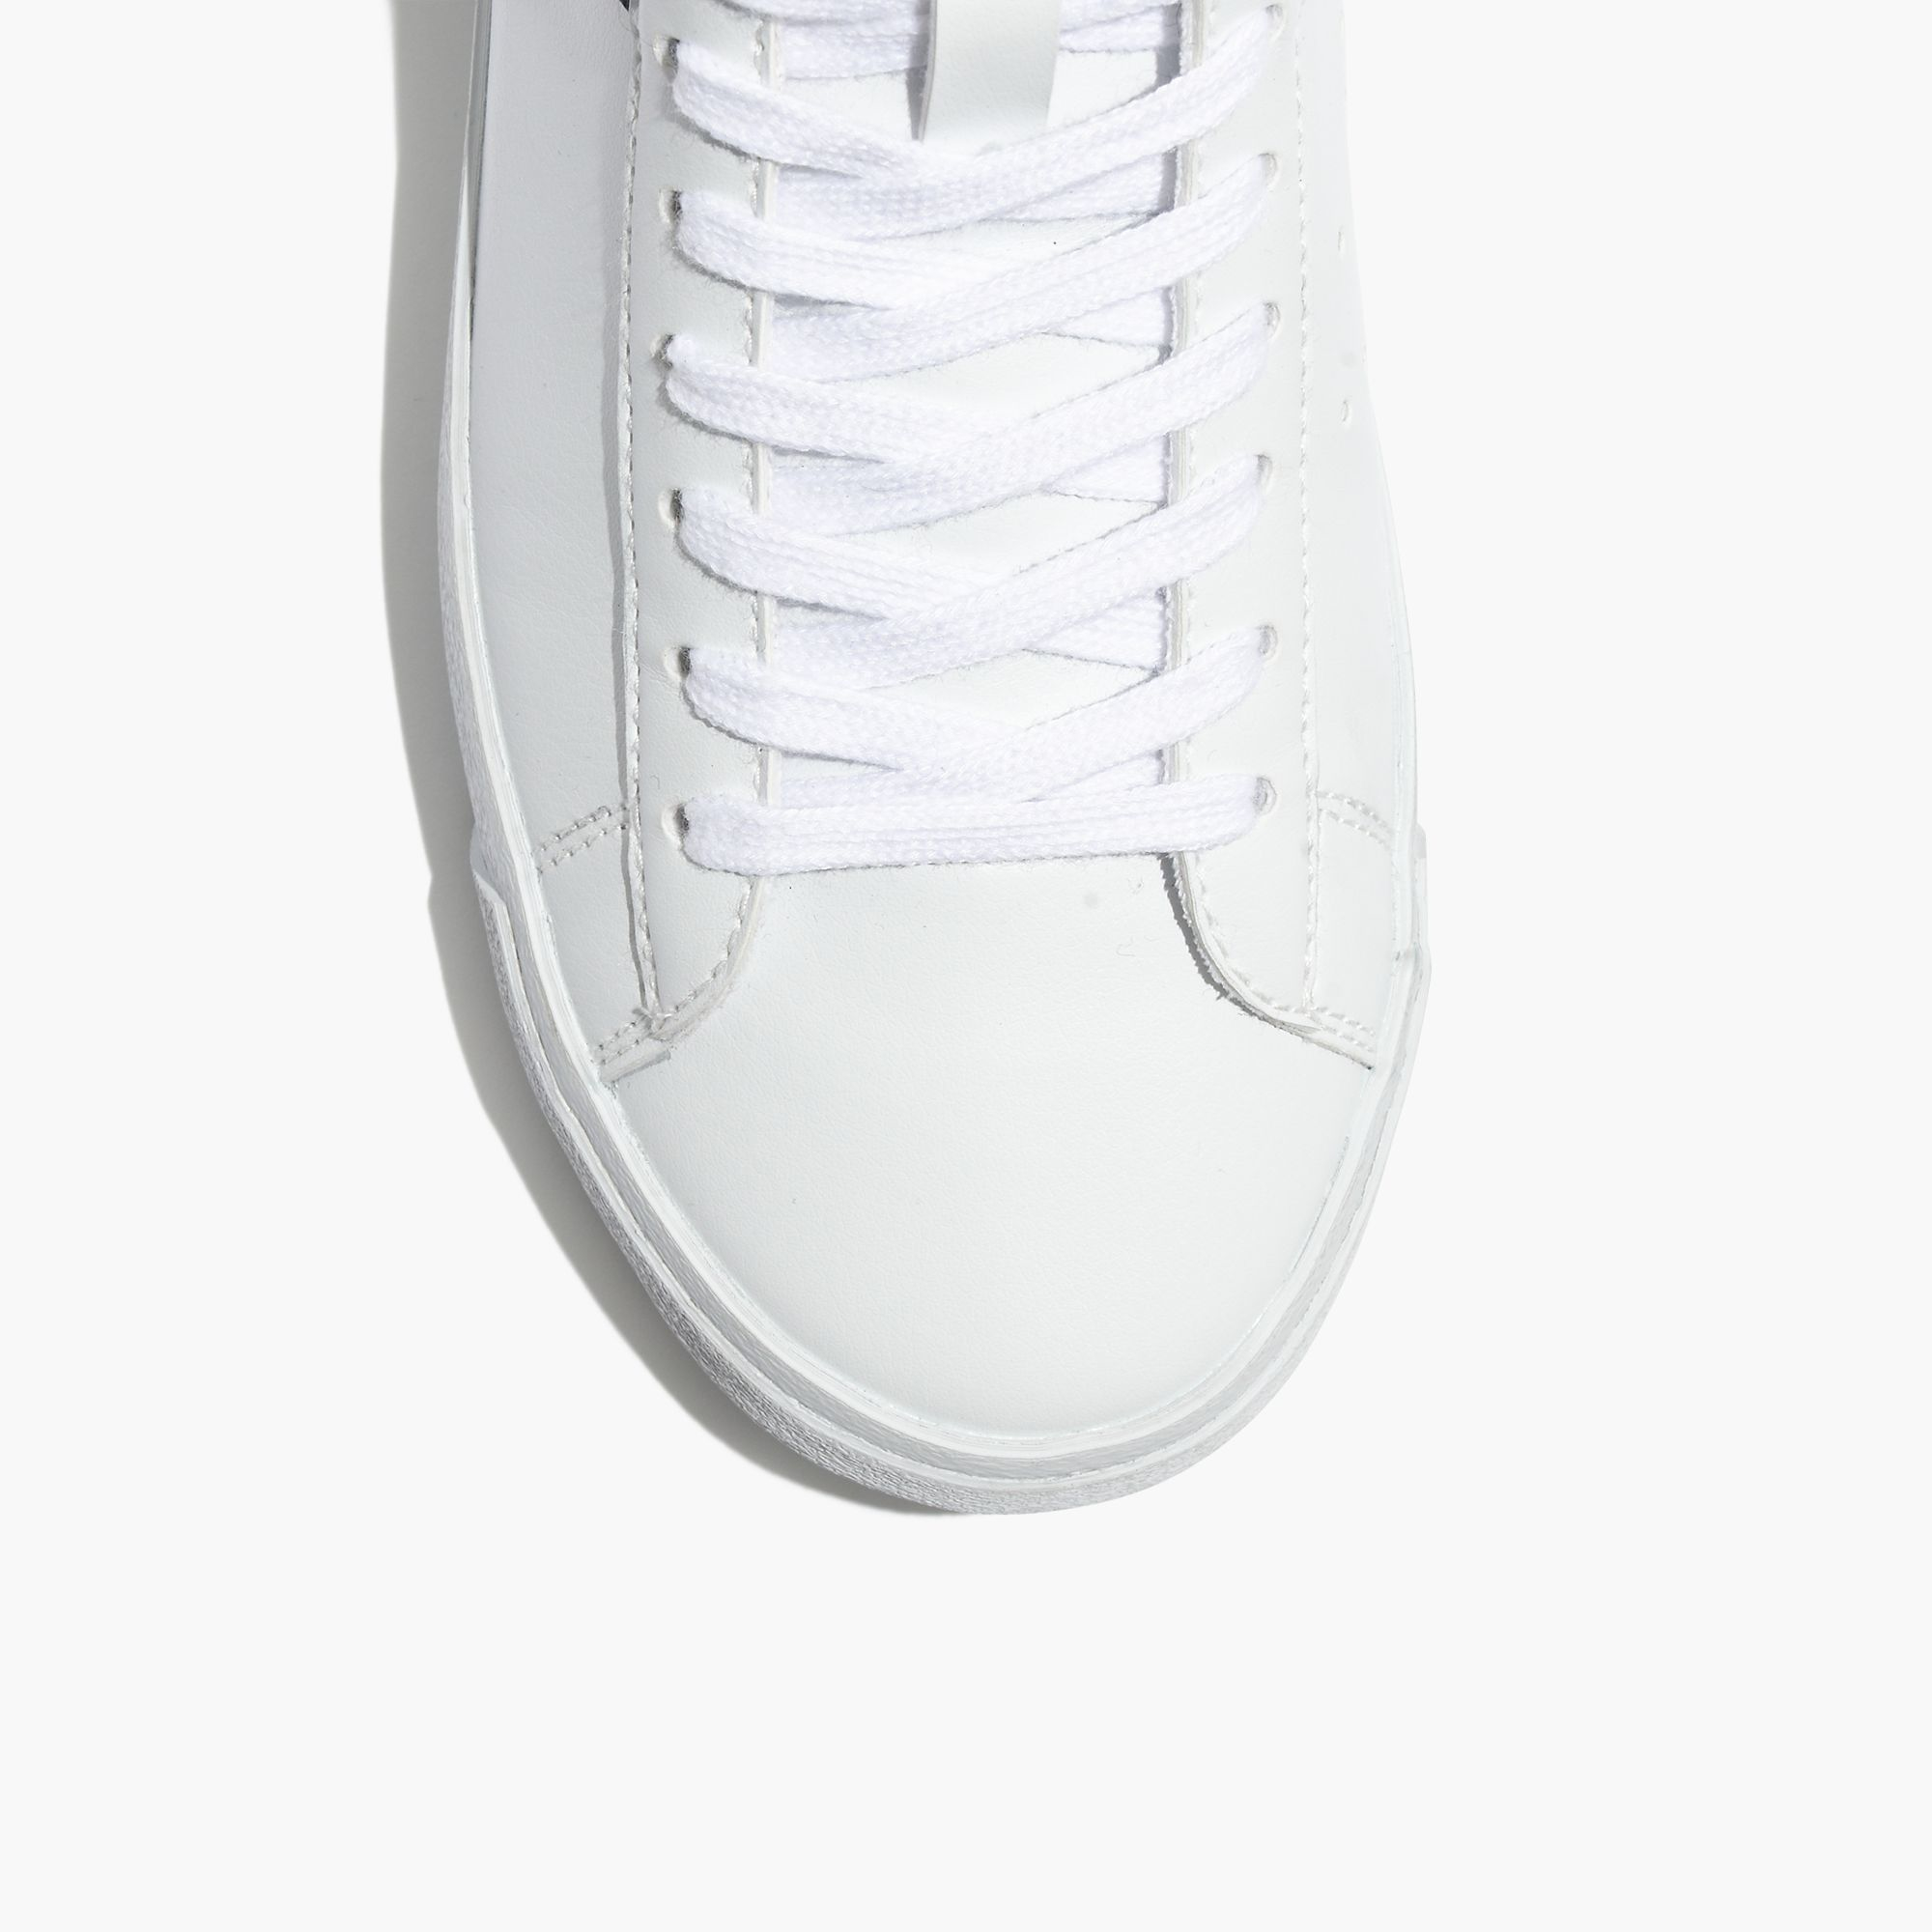 19ddbac8e6 Lyst - Madewell Pony® Topstar Hi High-top Sneakers in White